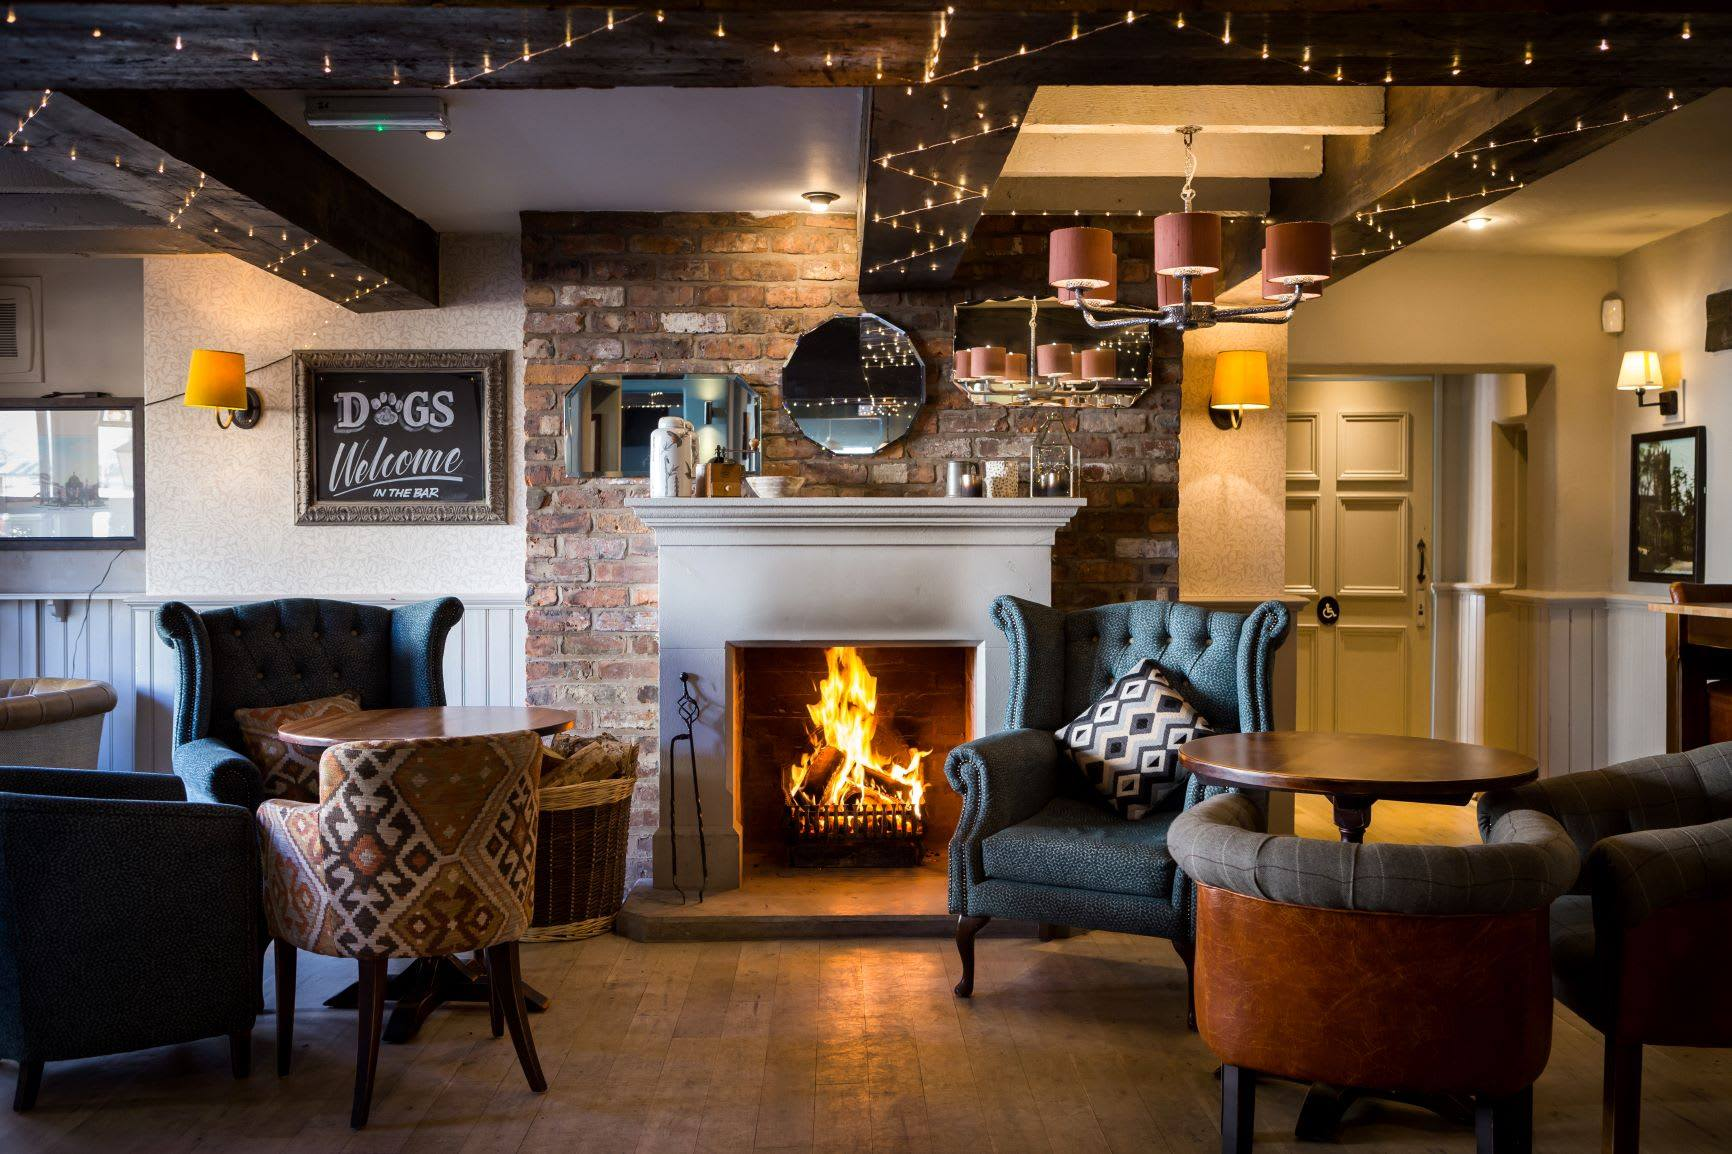 The Berkshire Arms